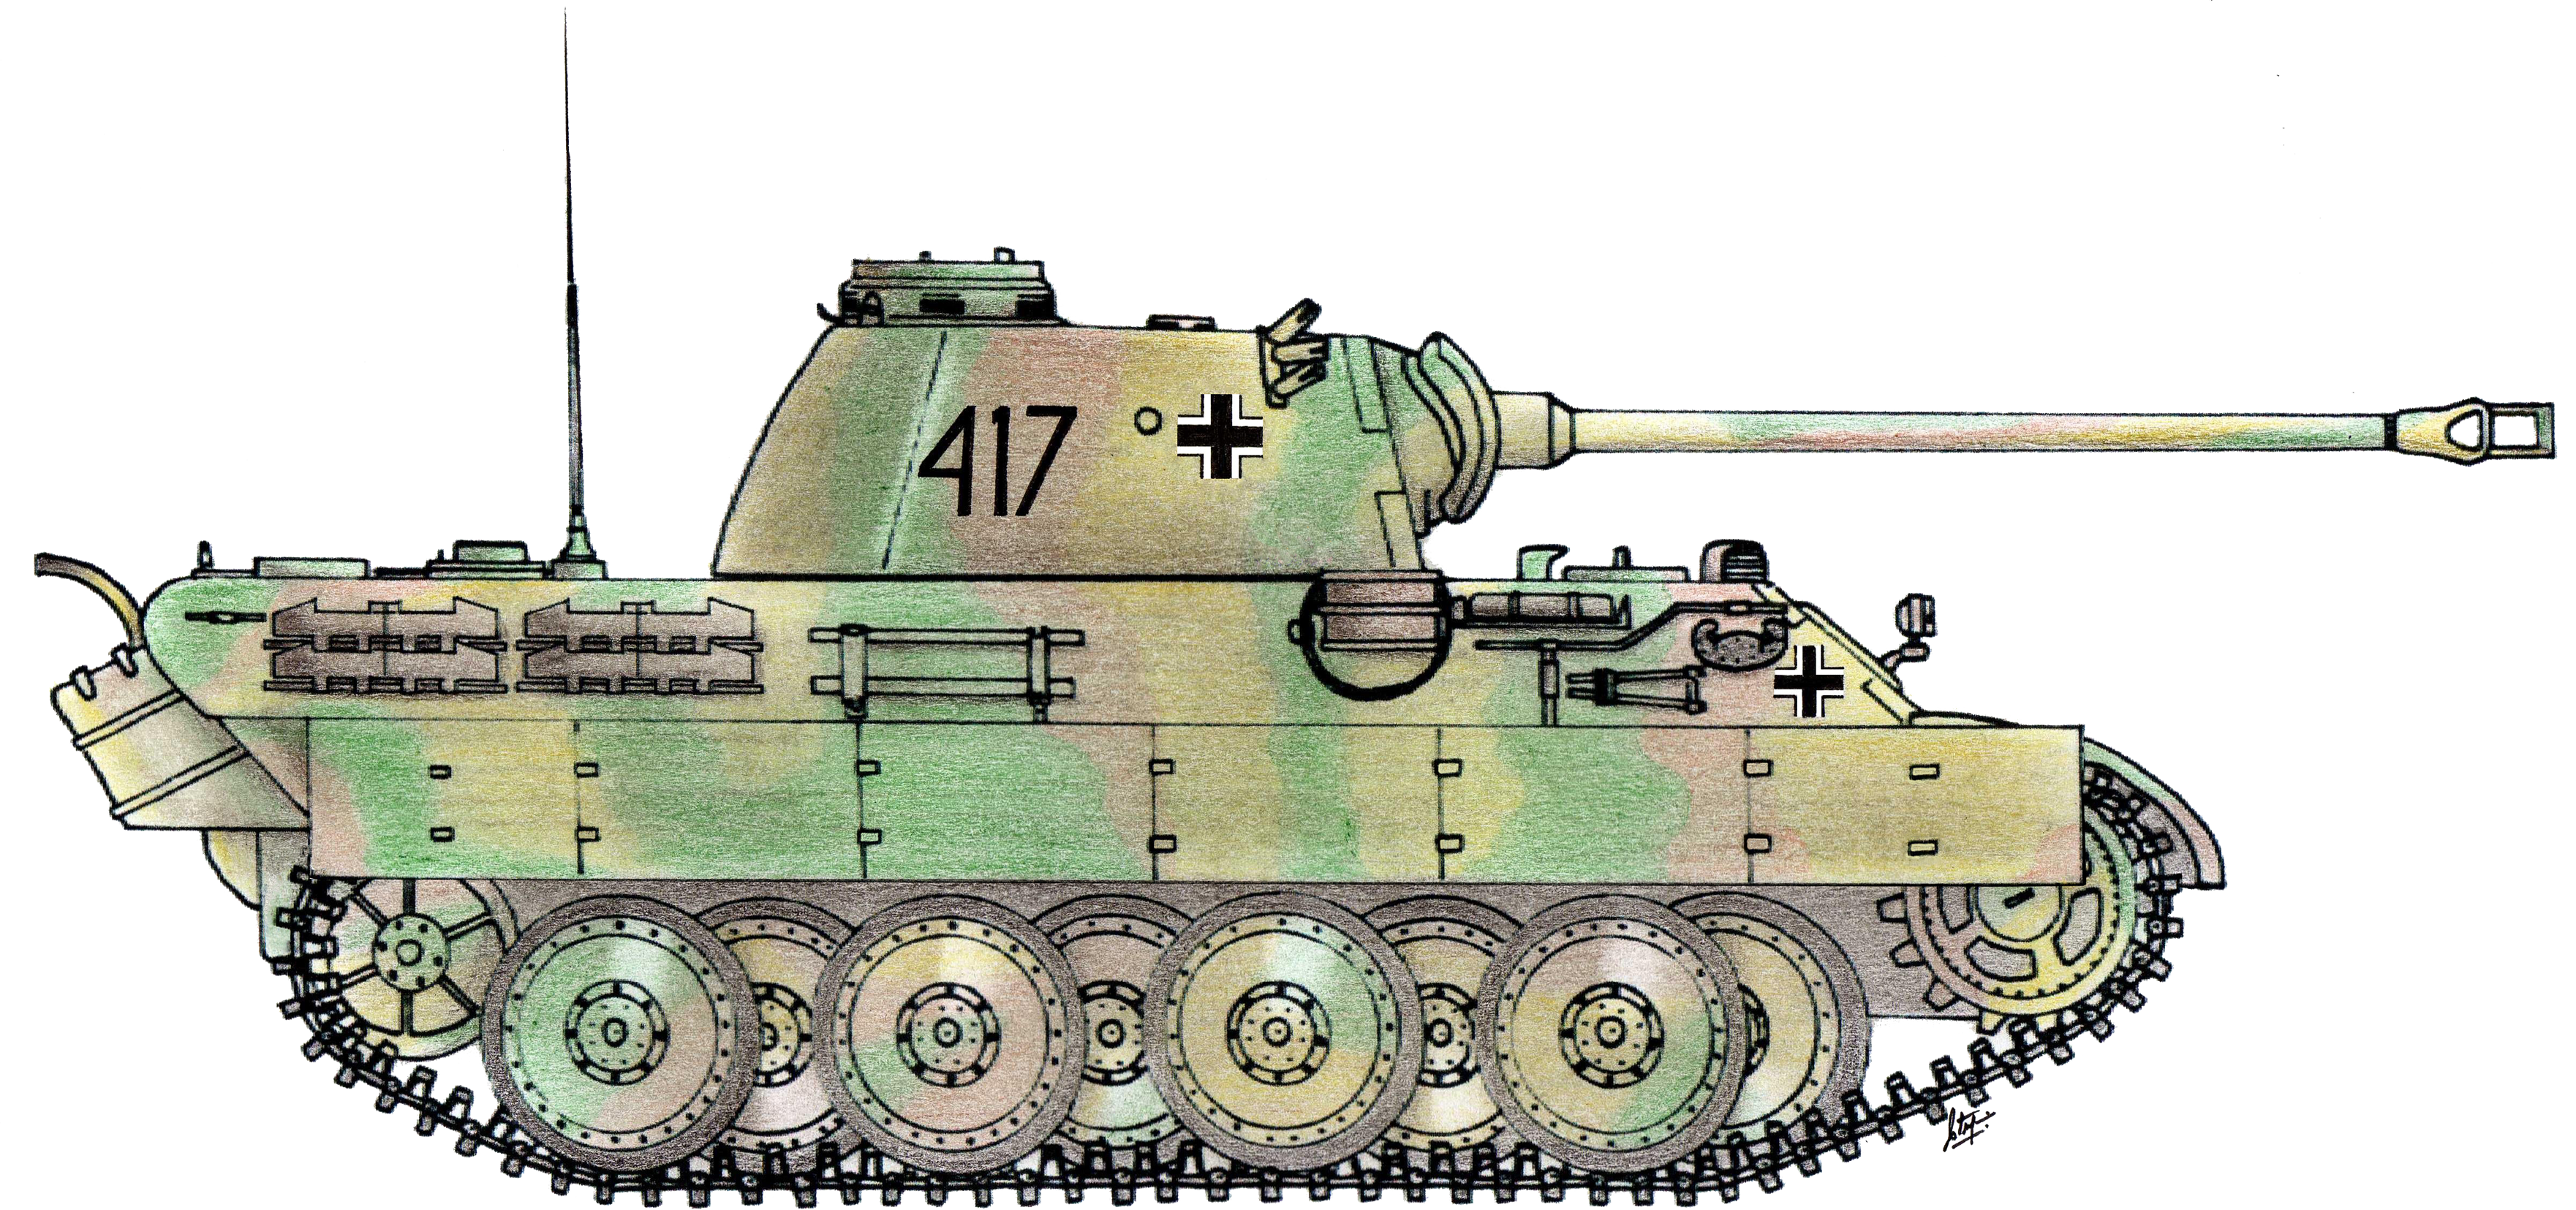 Png images german tank. Tanks drawing clipart royalty free download